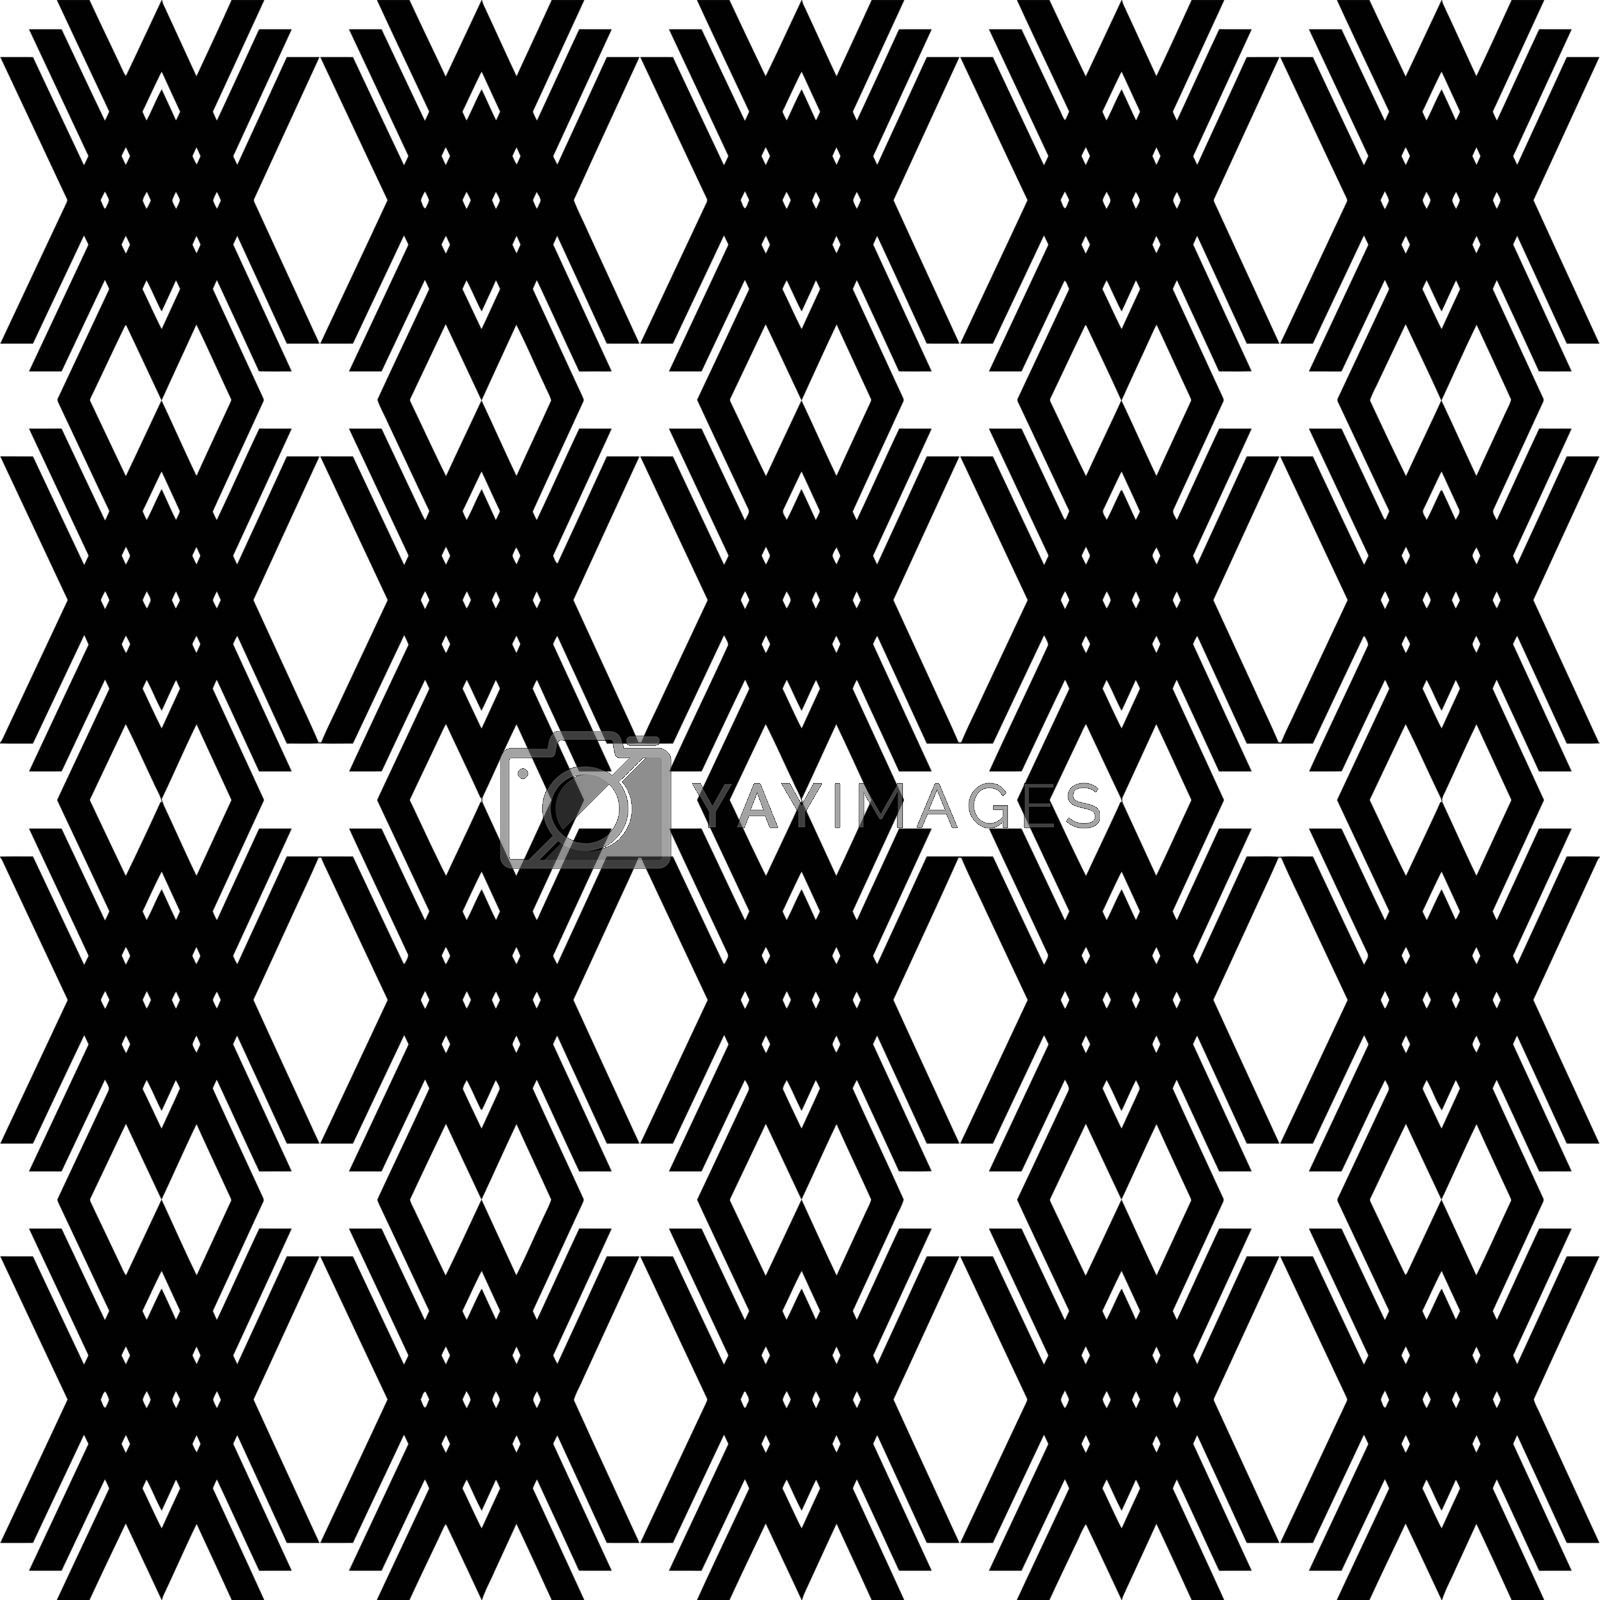 Abstract background of seamless fashion geometric patterns